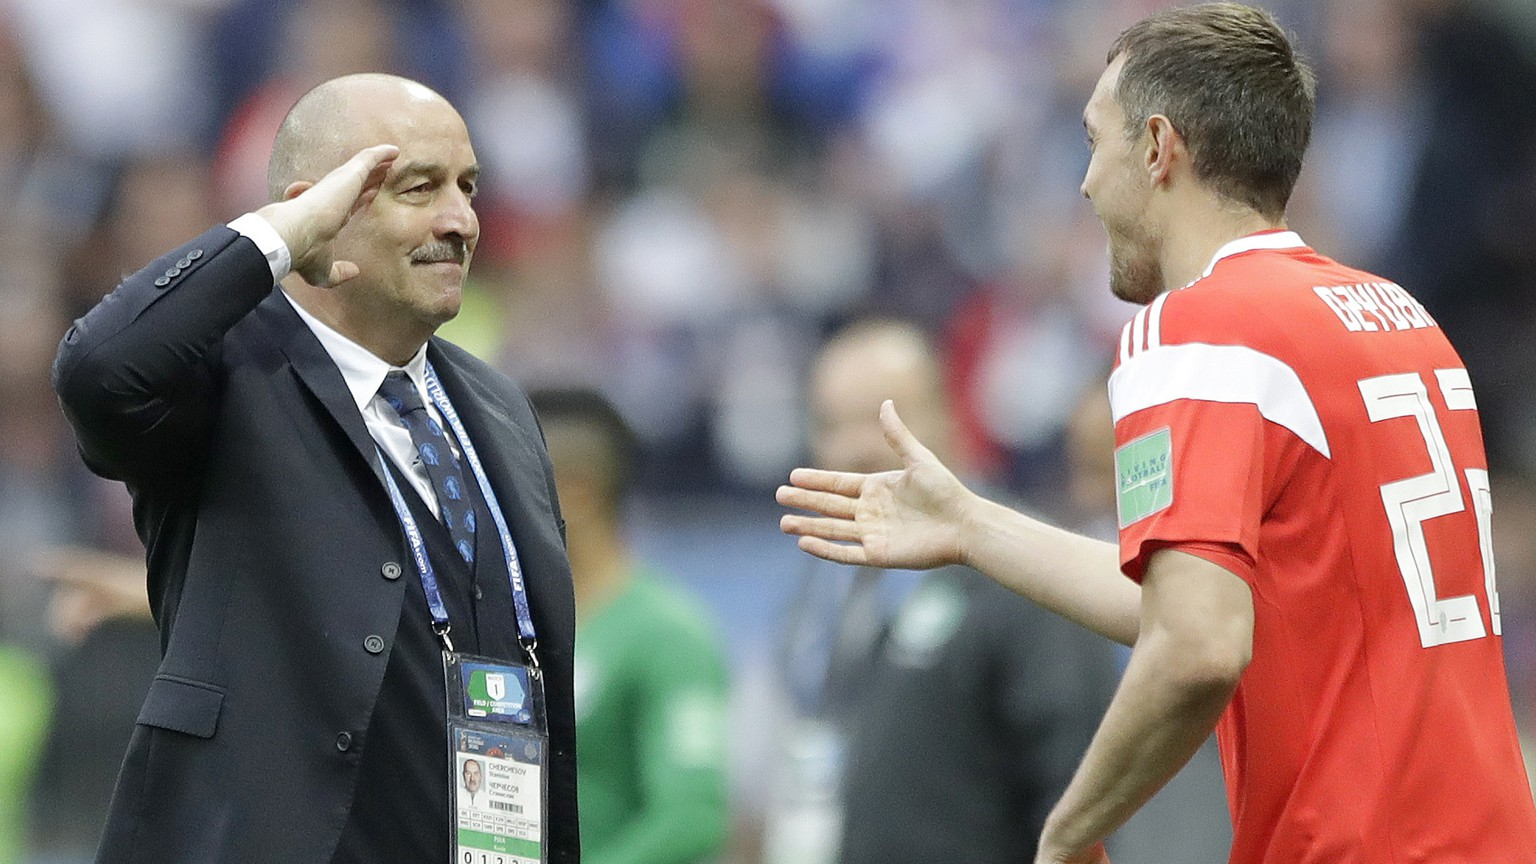 Russia head coach Stanislav Cherchesov, left, salutes to goal scorer Russia's Artyom Dzyuba during the group A match between Russia and Saudi Arabia which opens the 2018 soccer World Cup at the Luzhniki stadium in Moscow, Russia, Thursday, June 14, 2018. (AP Photo/Matthias Schrader)